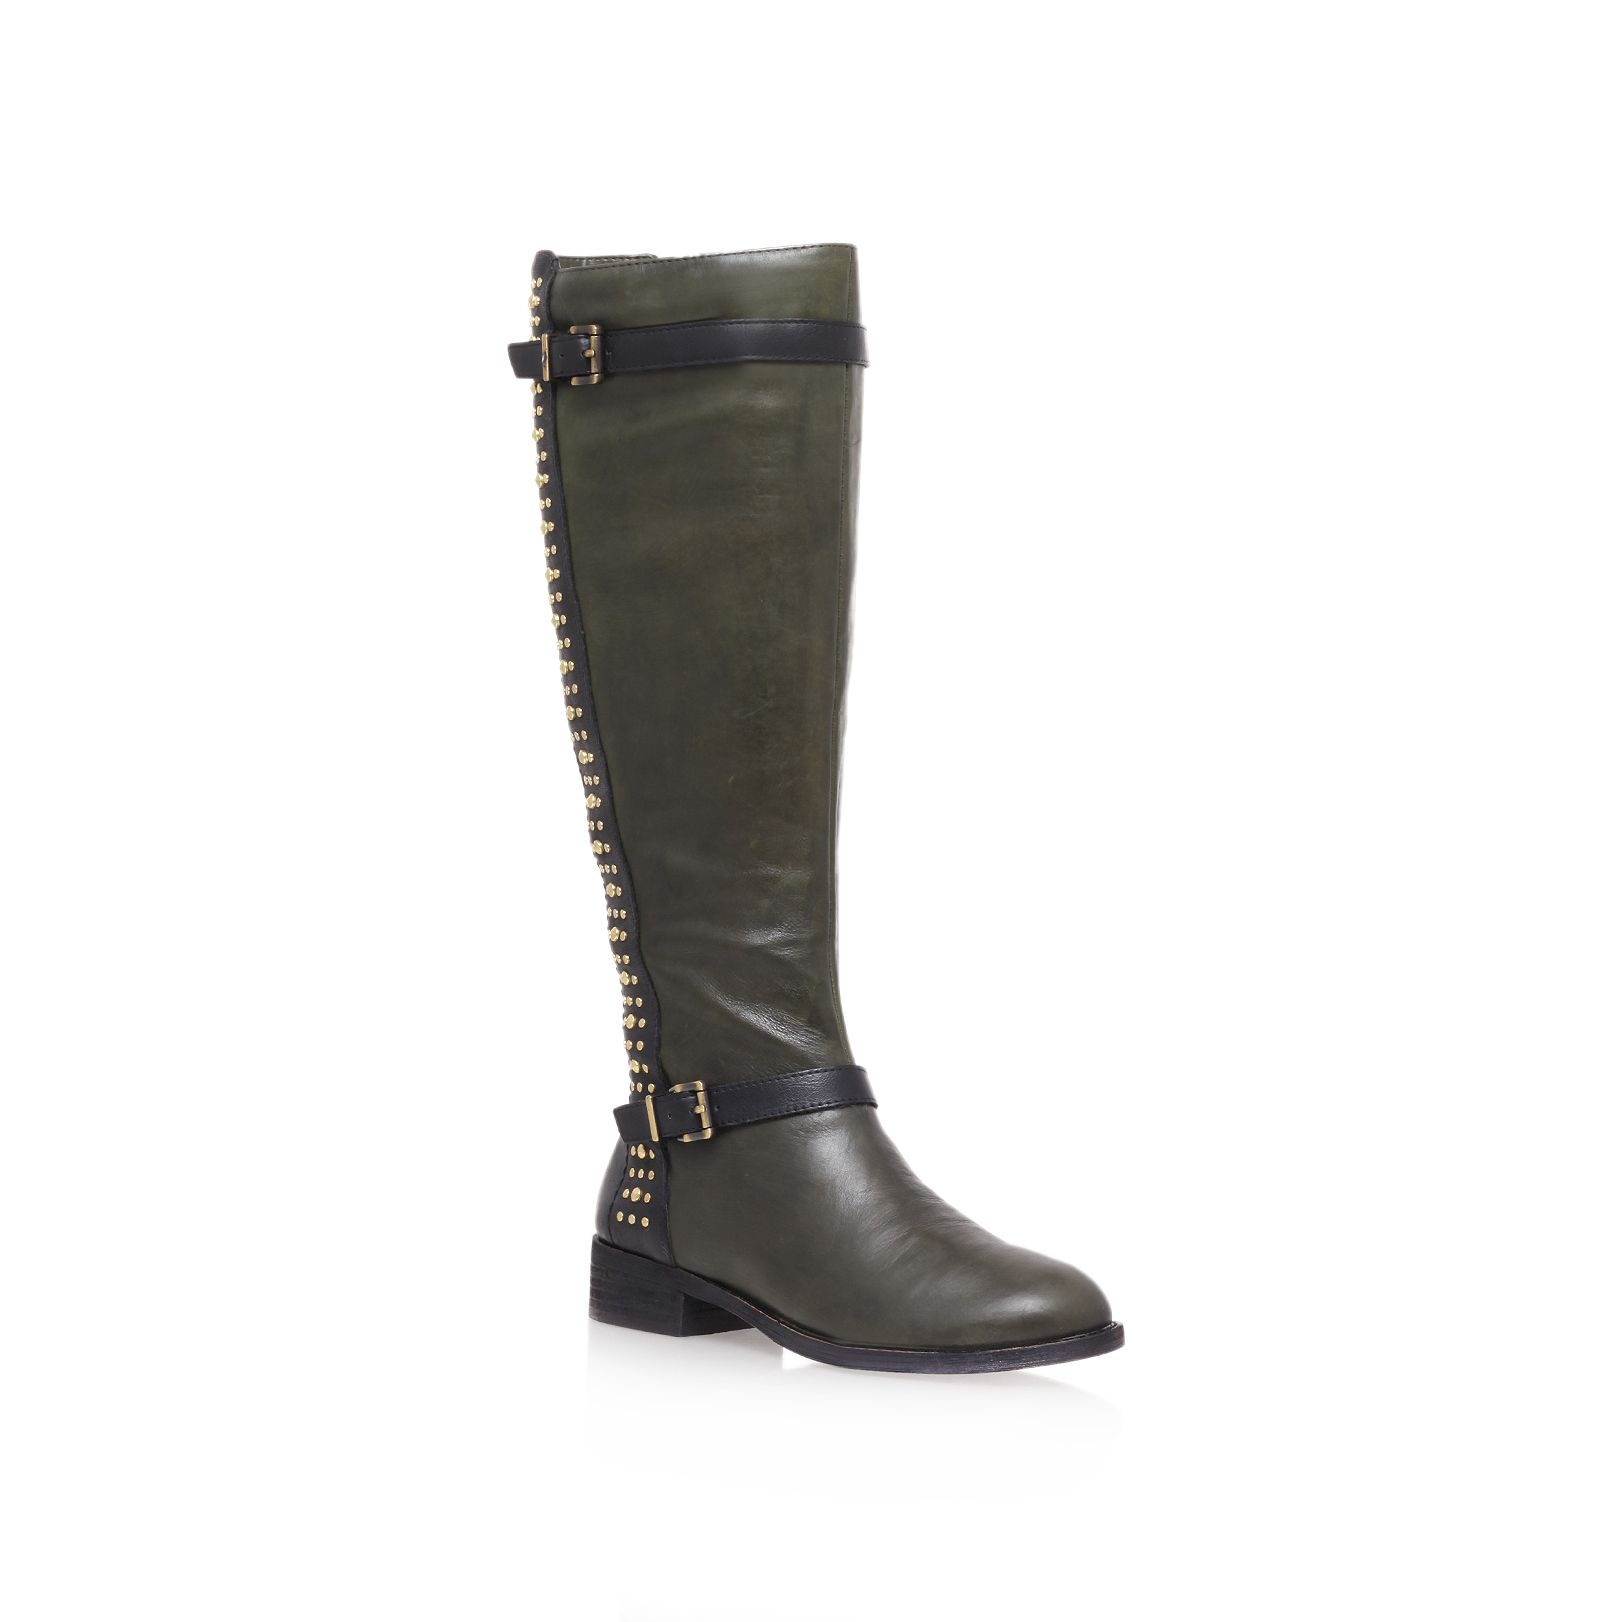 Ellister low heel calf boots